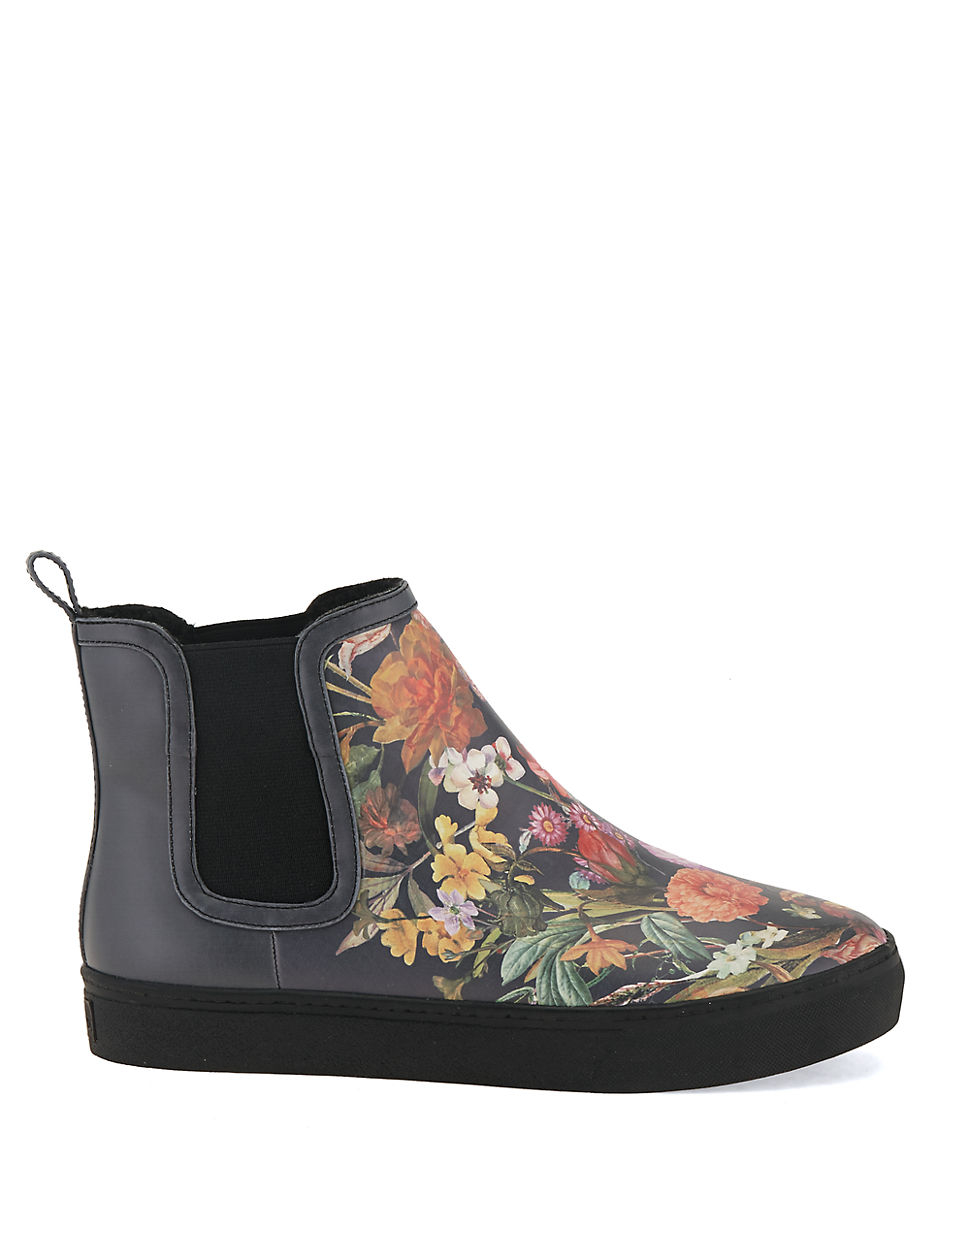 elliott lucca palmira sherpa lined ankle boots in